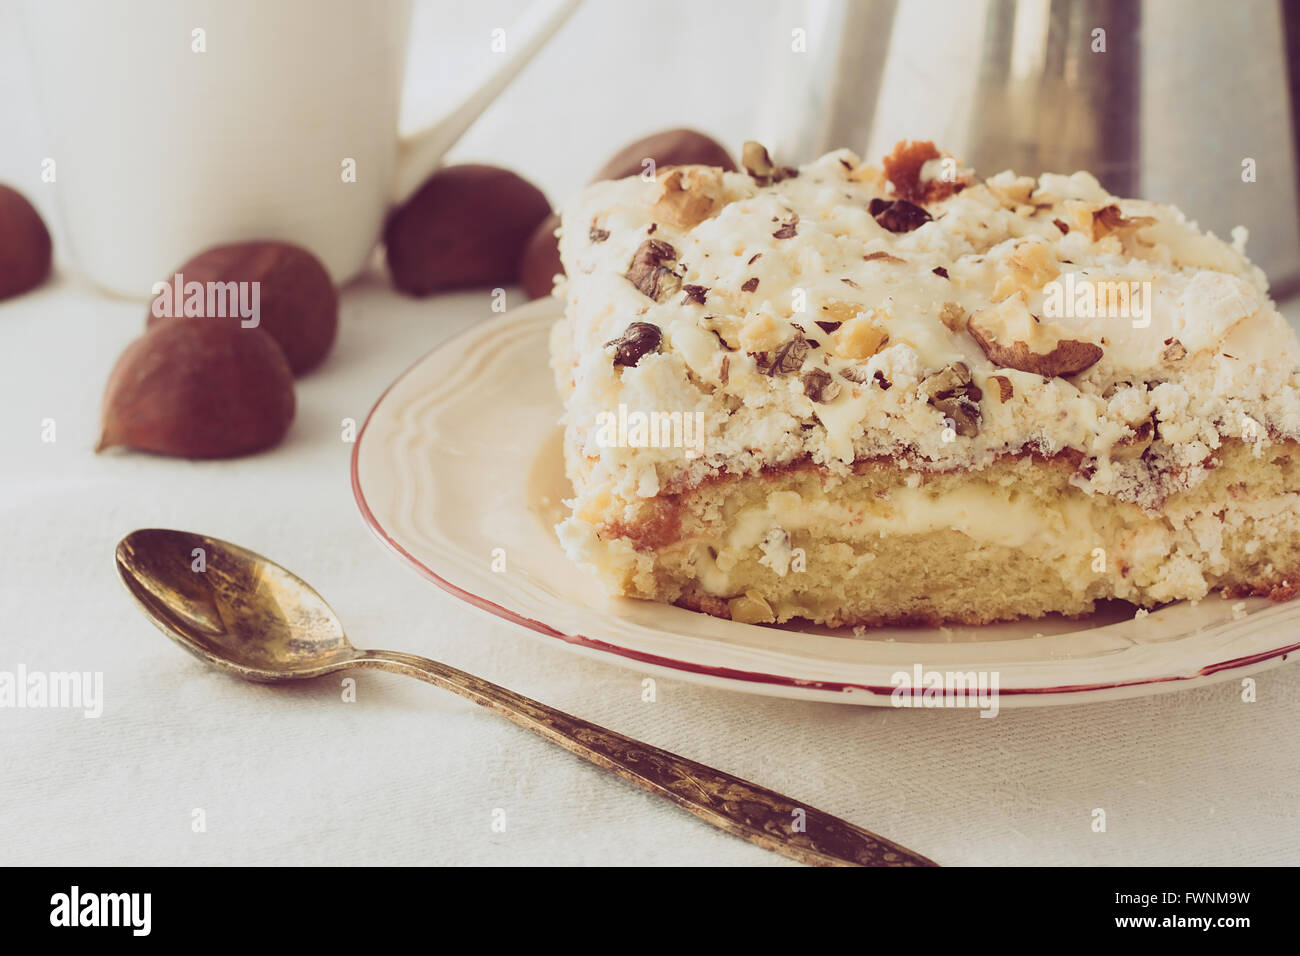 Piece of cream cake on white plate selective focus horizontal - Stock Image